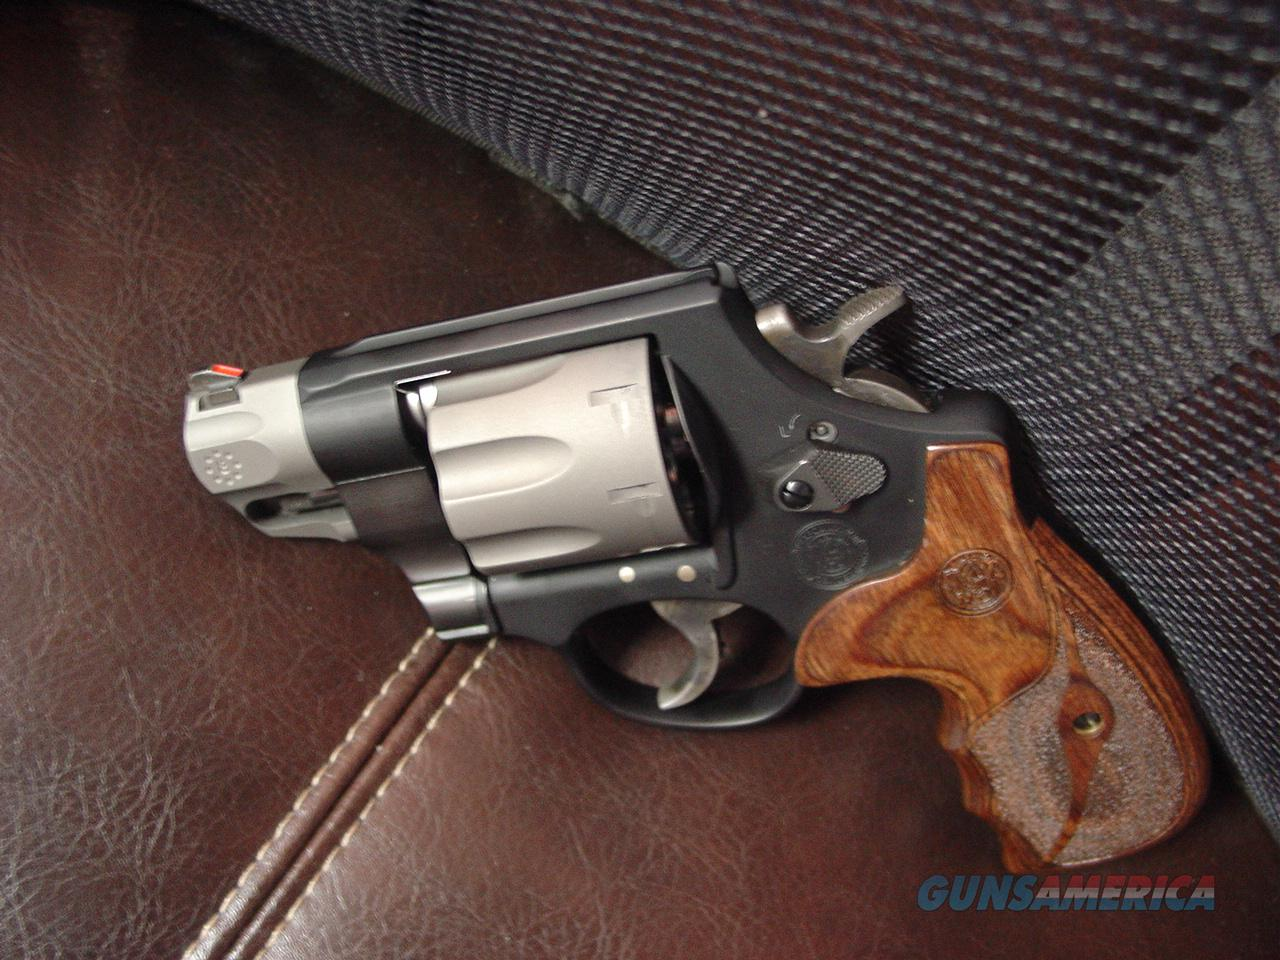 "Smith & Wesson model M327,8 shots,357 magnum,super light,Performance Center light trigger pull,beautiful wood grips,2"" barrel,2 tone finish,box & manual,as new,test fired-,super nice !!  Guns > Pistols > Smith & Wesson Revolvers > Performance Center"